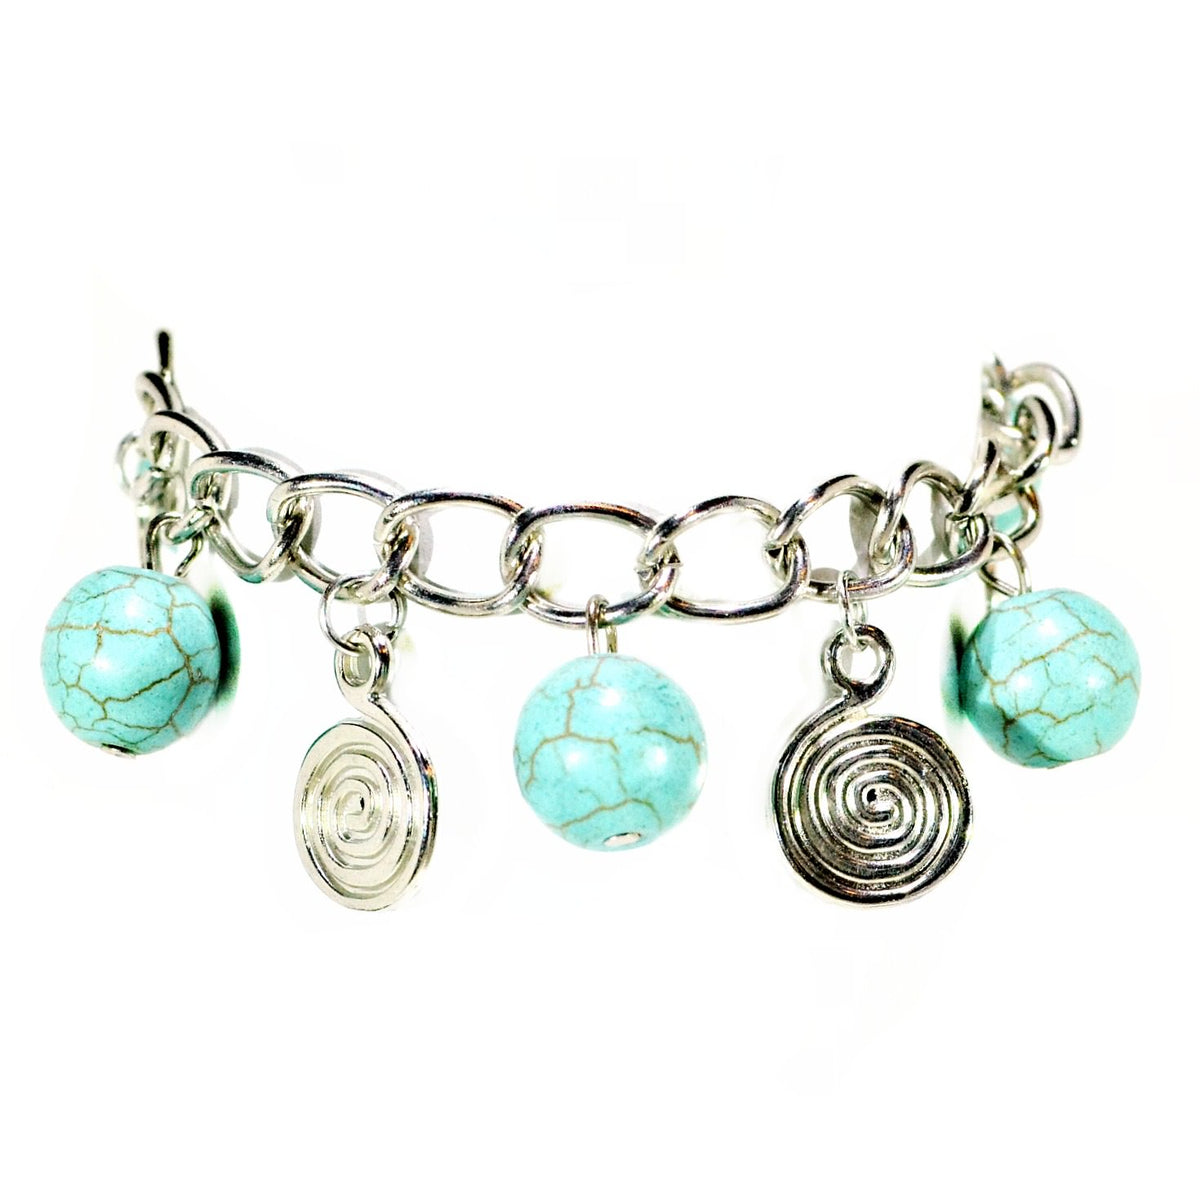 metallic mermaid turquoise marble ball bracelet gifts gift ideas gifting made simple